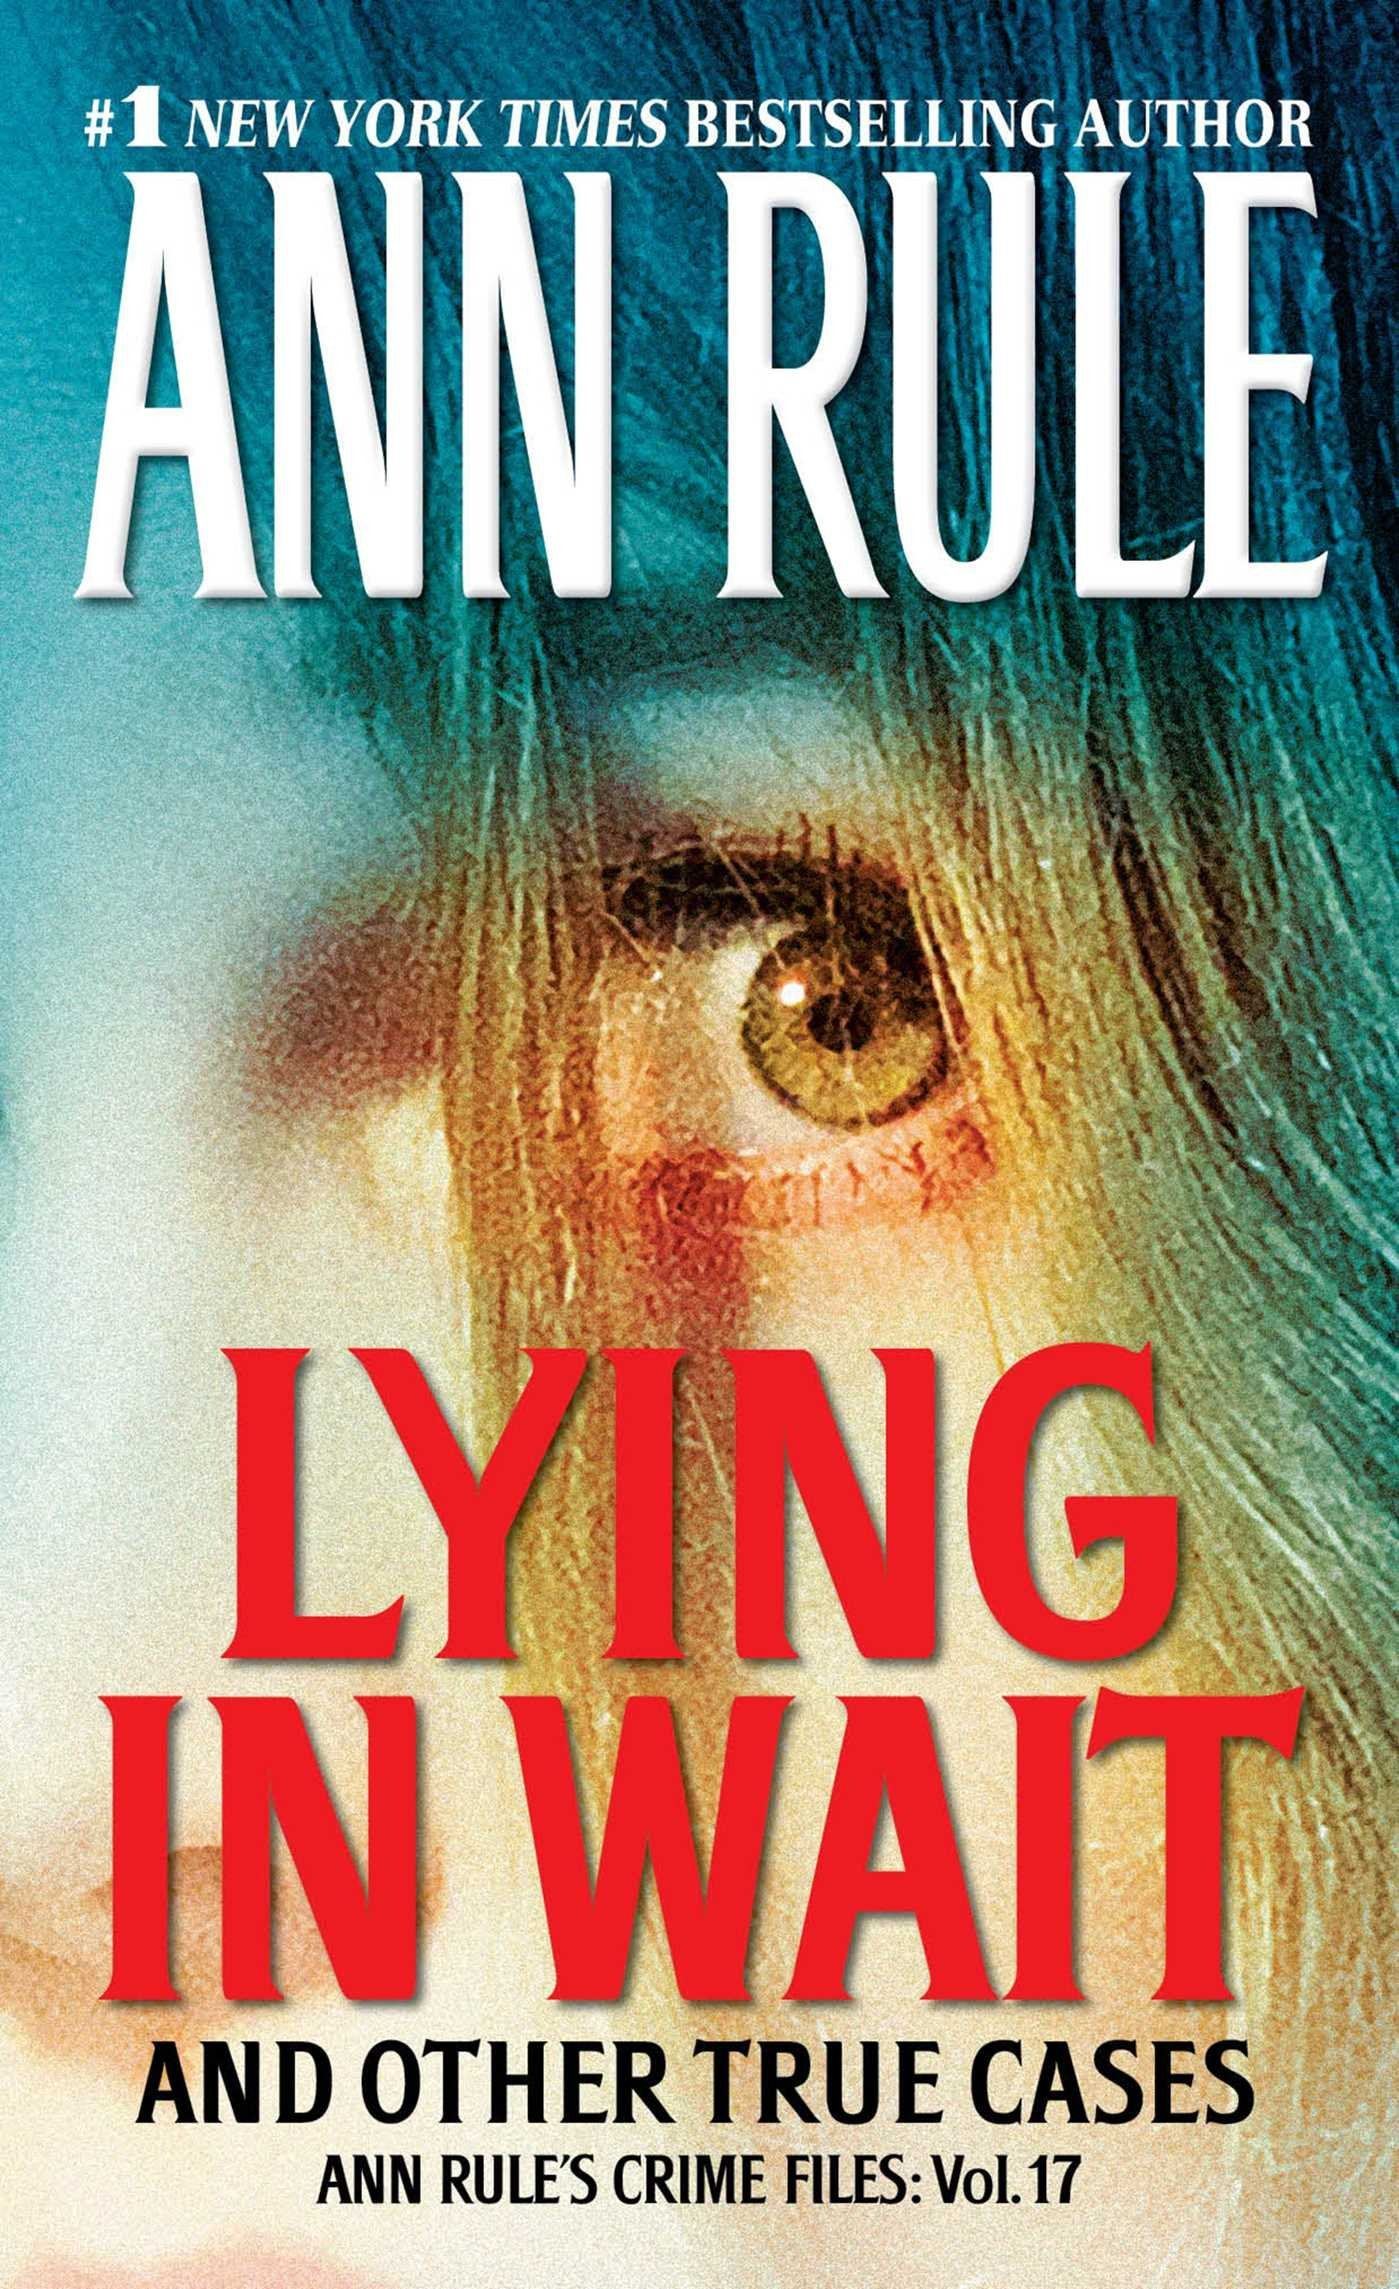 Lying in Wait: Ann Rule's Crime Files: Vol.17 Mass Market Paperback – November 25, 2014 Pocket Books 1451648294 Murder - General Homicide - United States